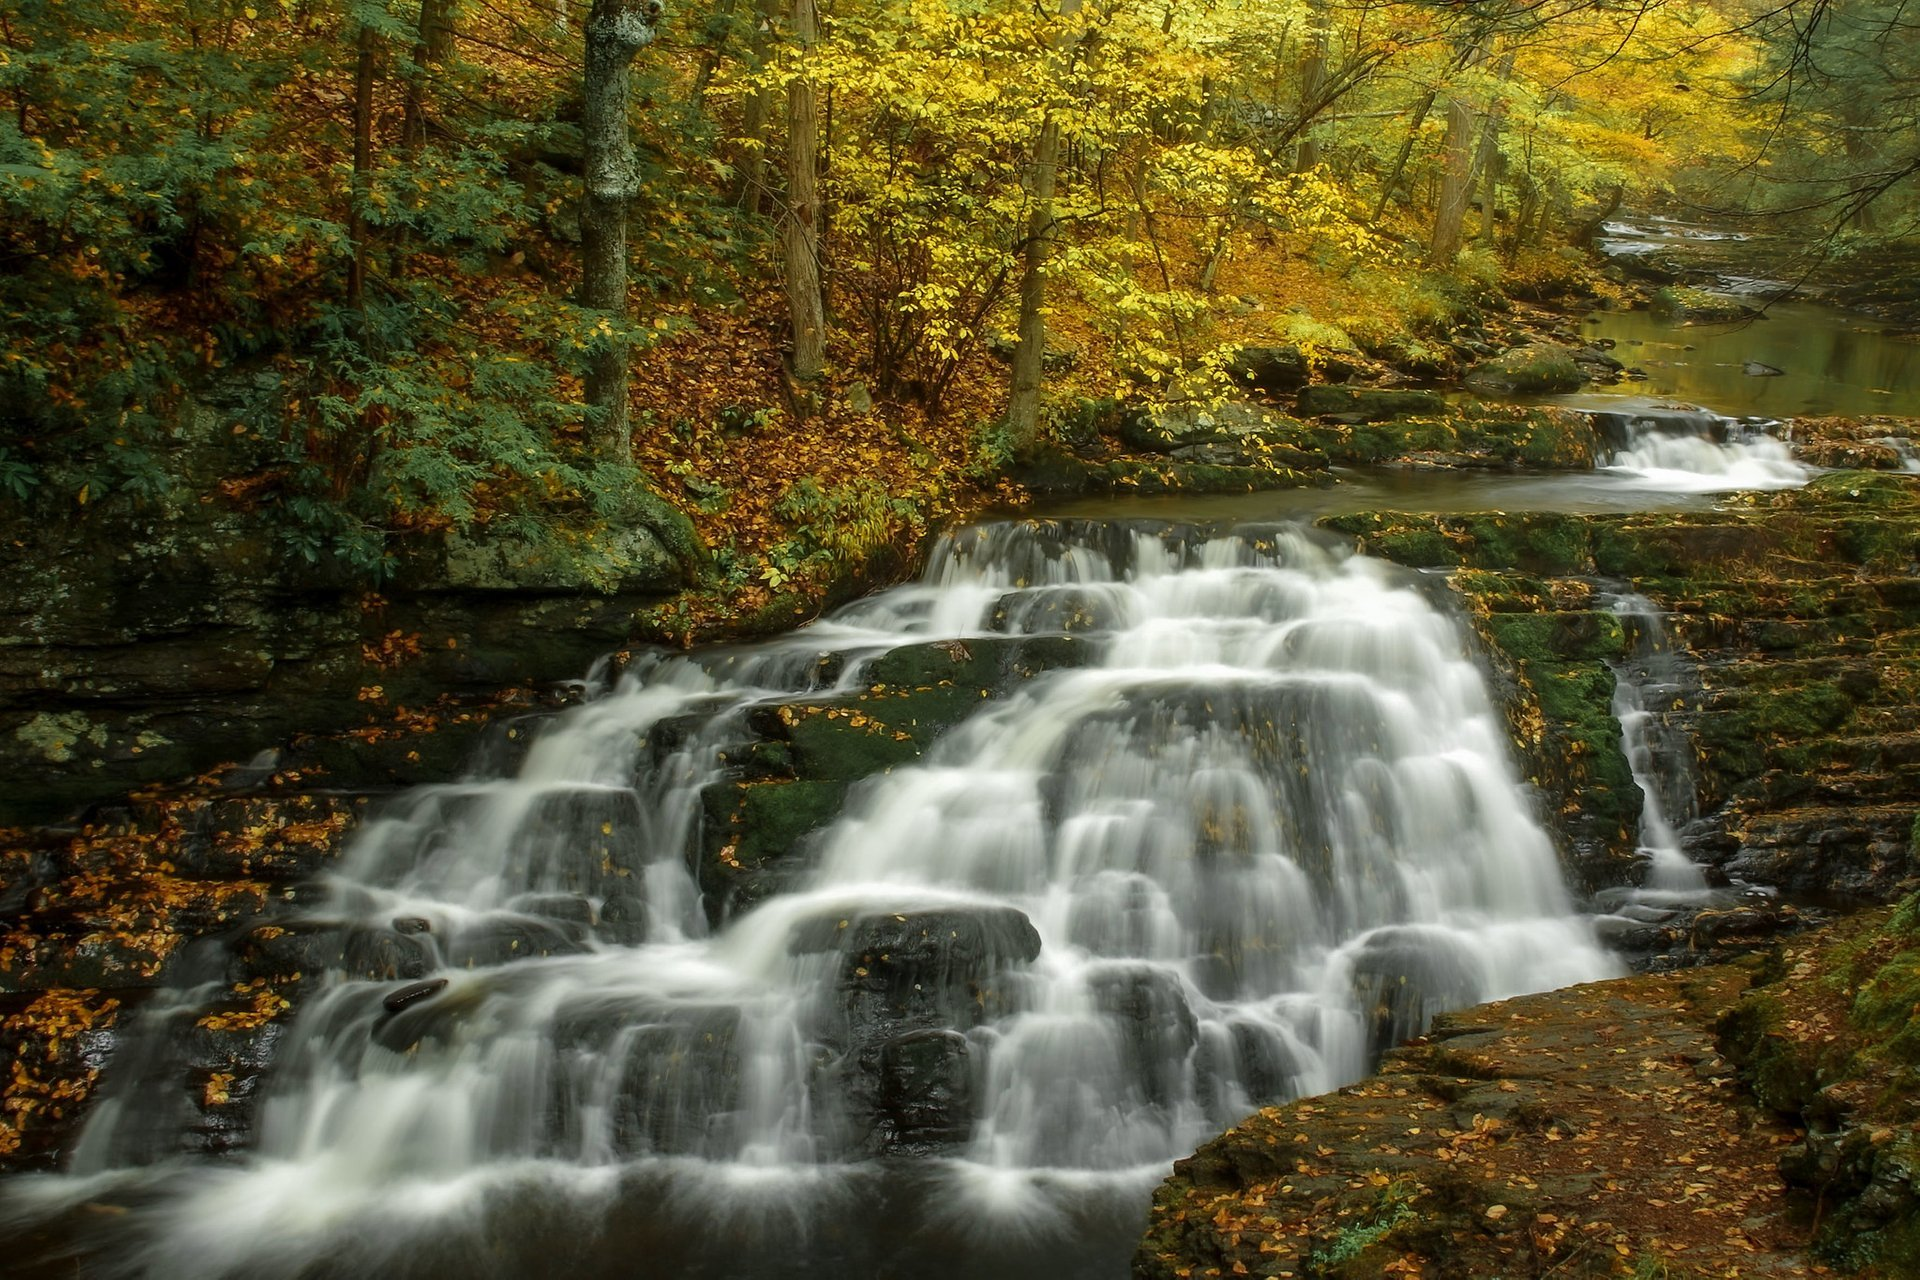 Pennell Falls in the Pocono Mountains, Pennsylvania 2020